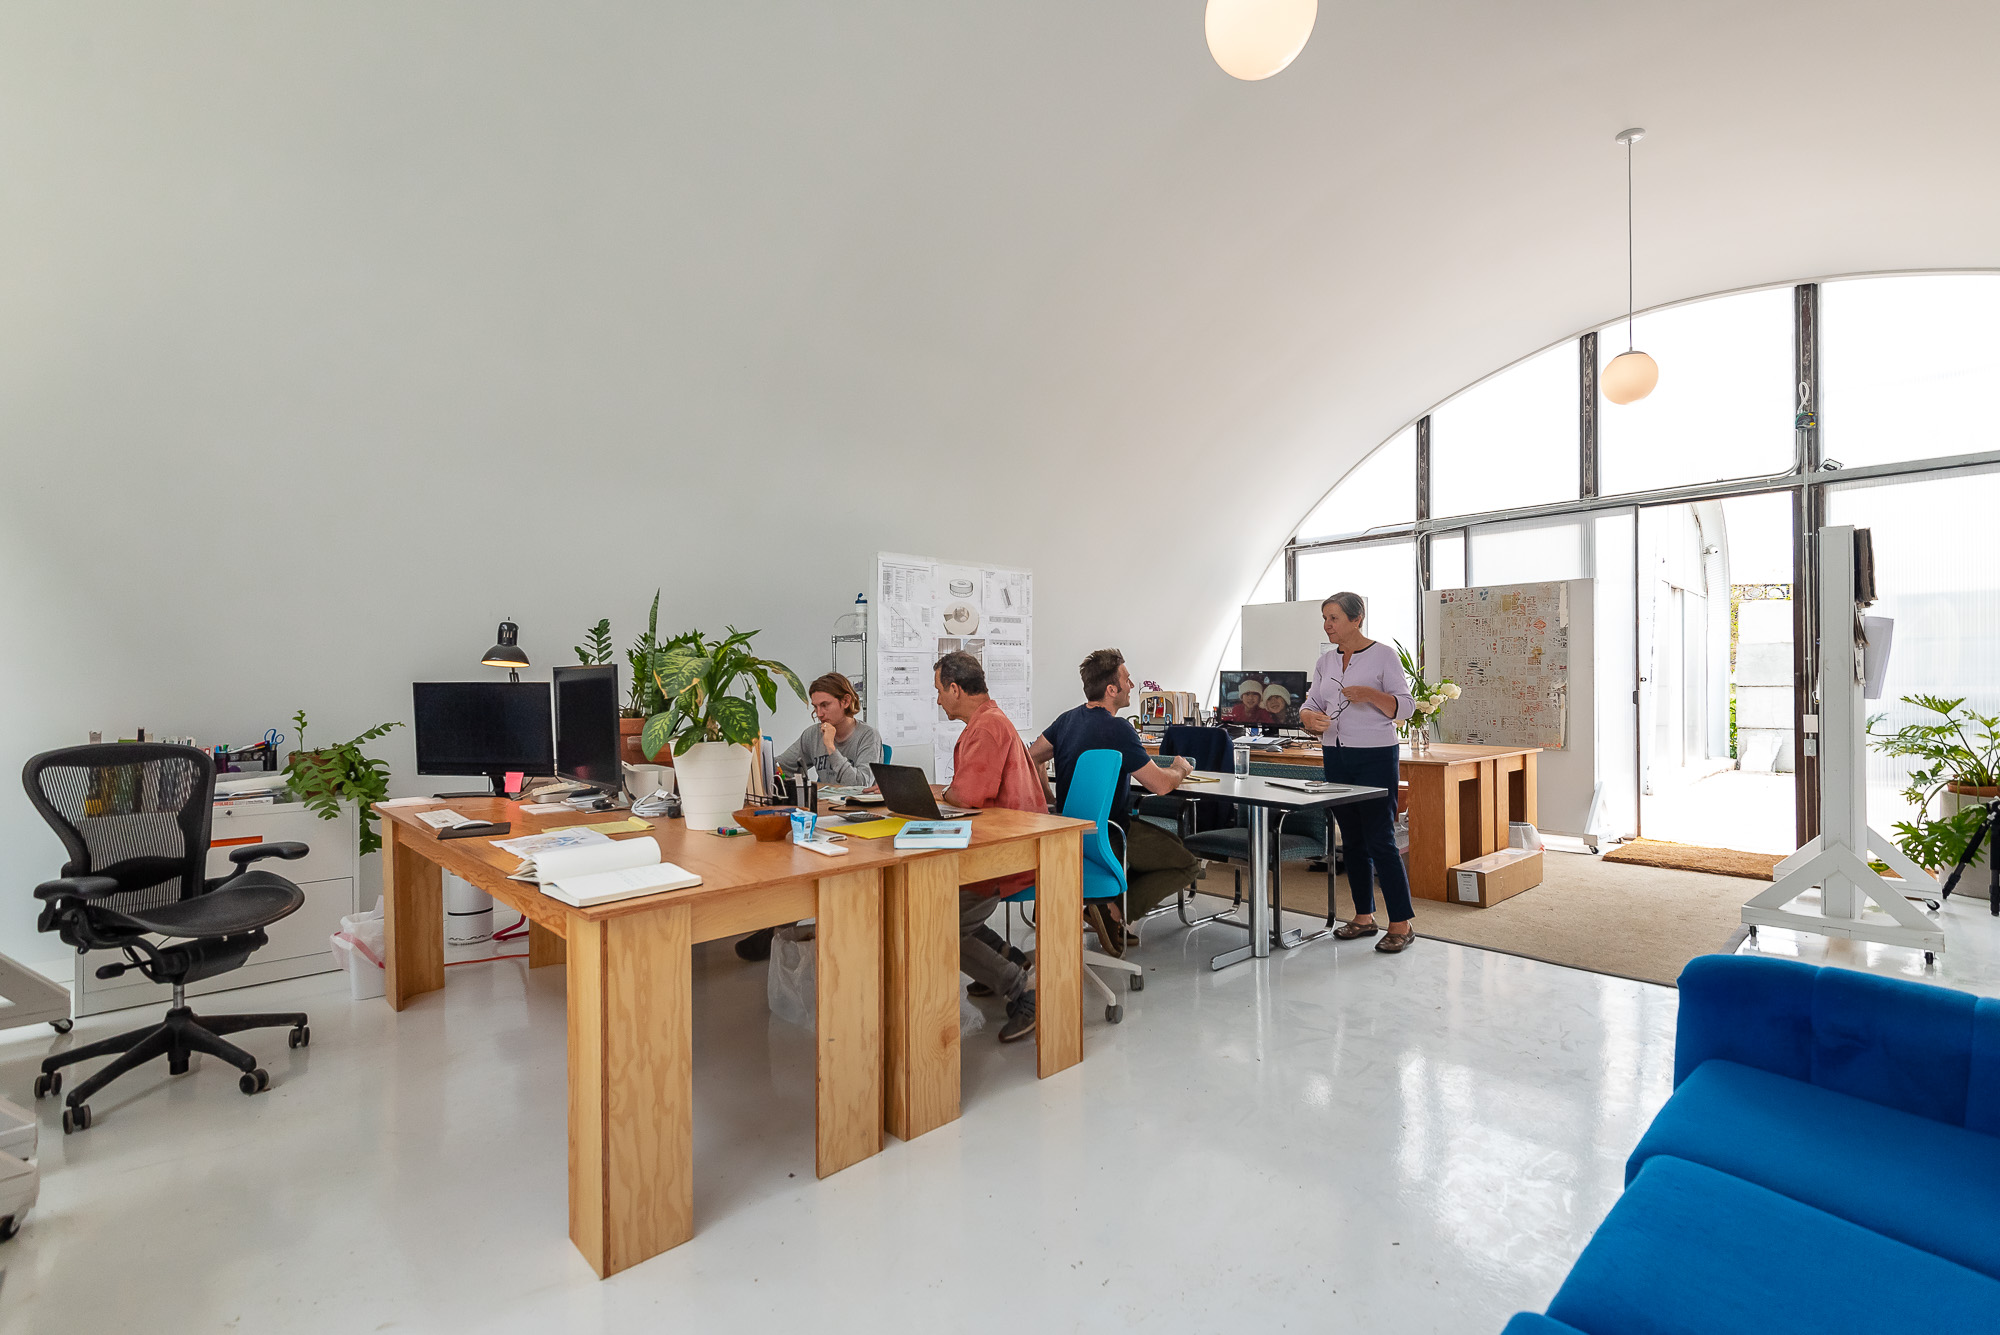 prince_concepts_office_hut_spring-14.jpg